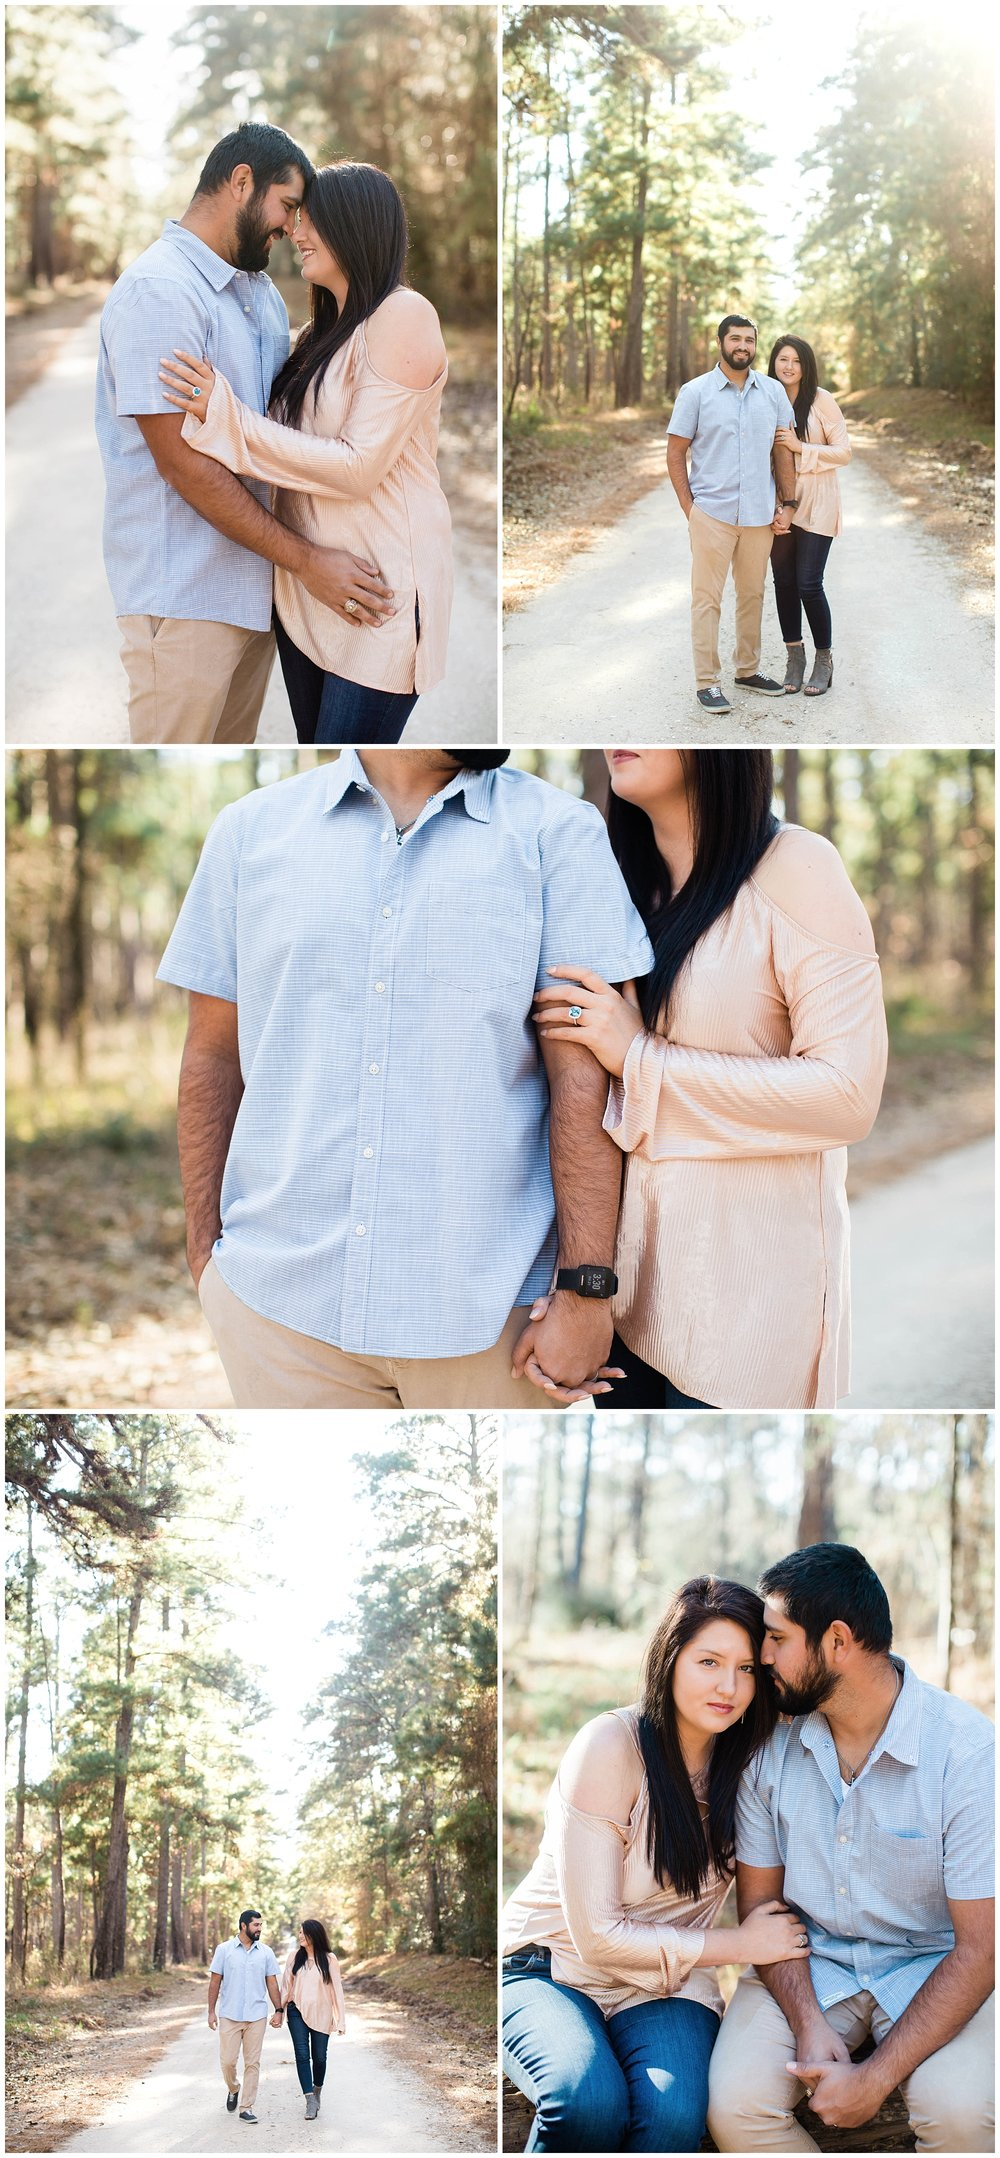 Sam_Houston_National_Forest_Engagement_Session_Kristina_Ross_Photography_0002.jpg